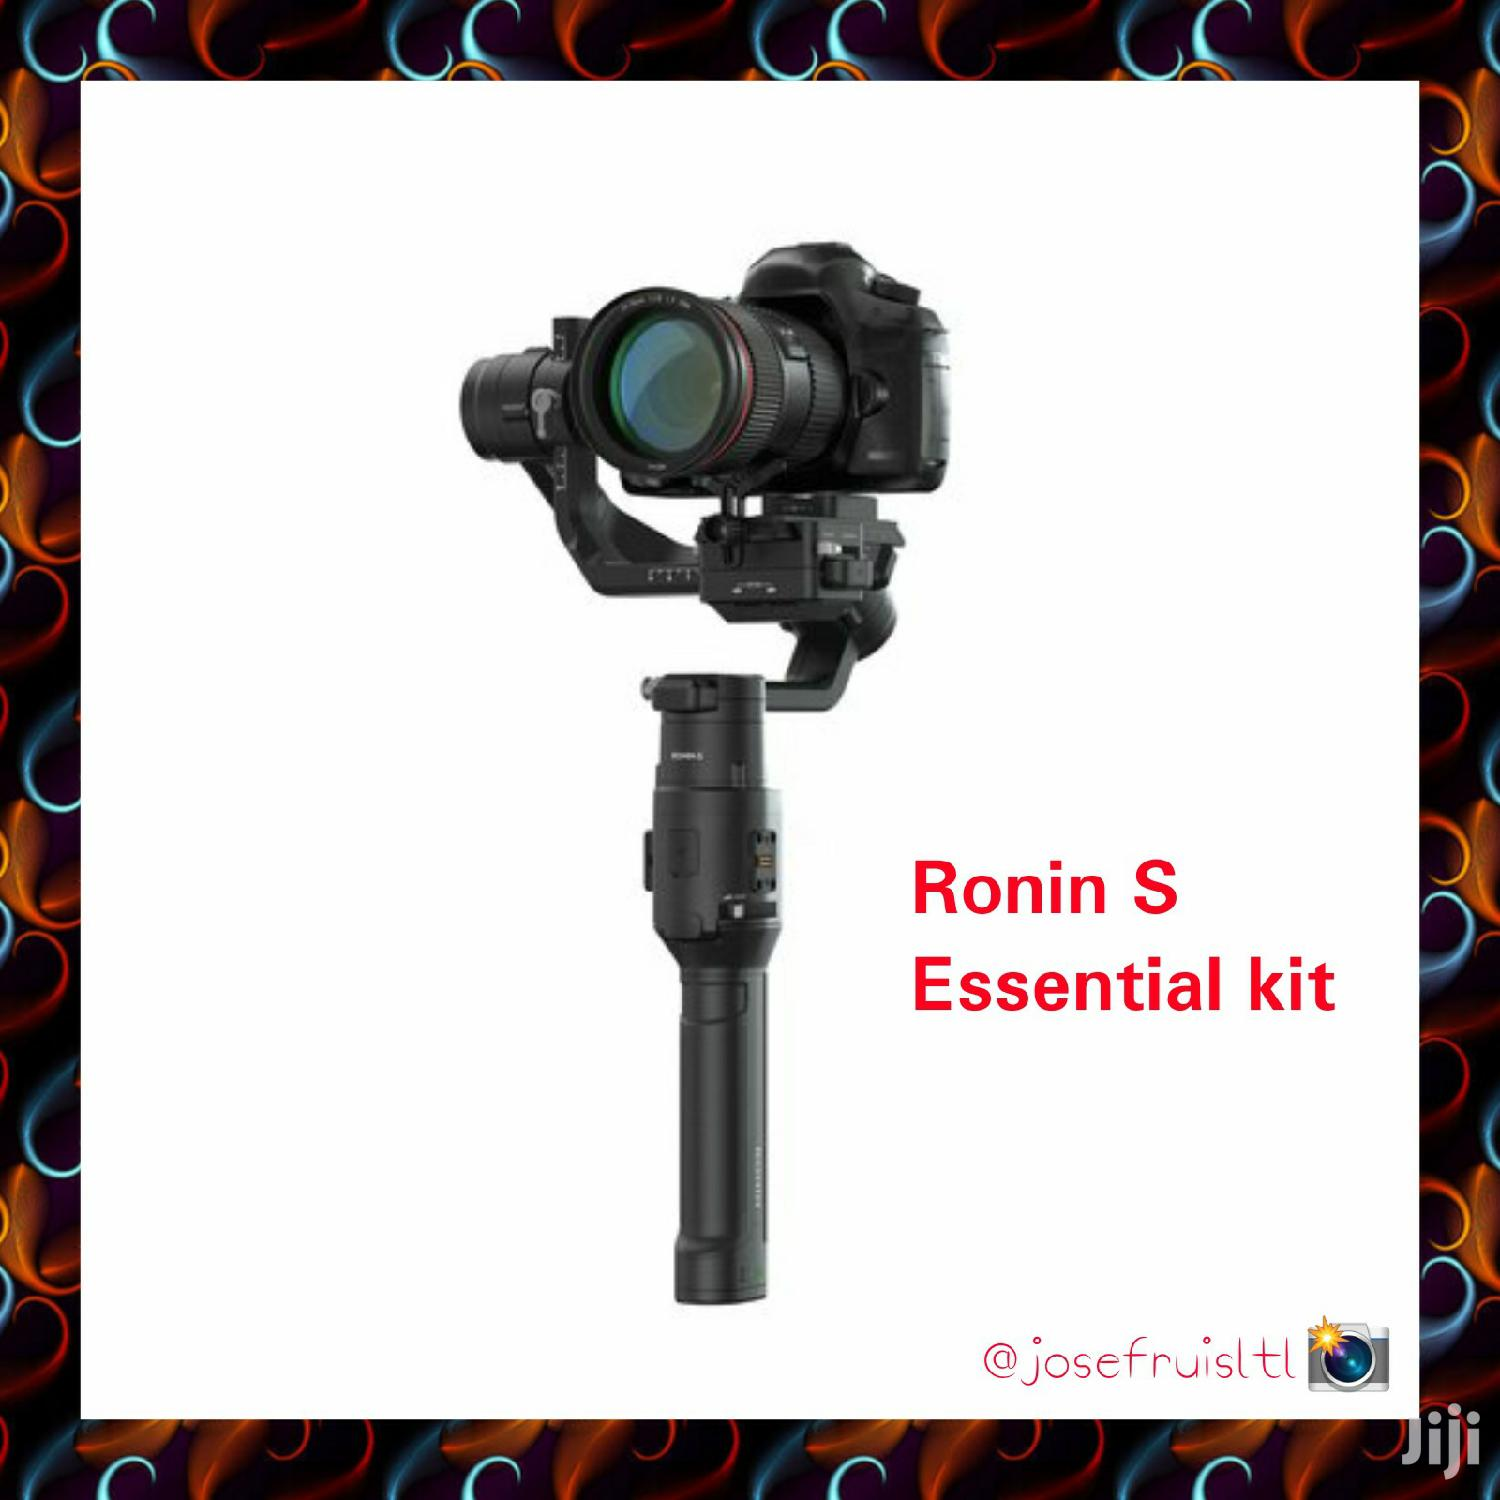 Ronin S Gimbal Stabilizer for Hire.